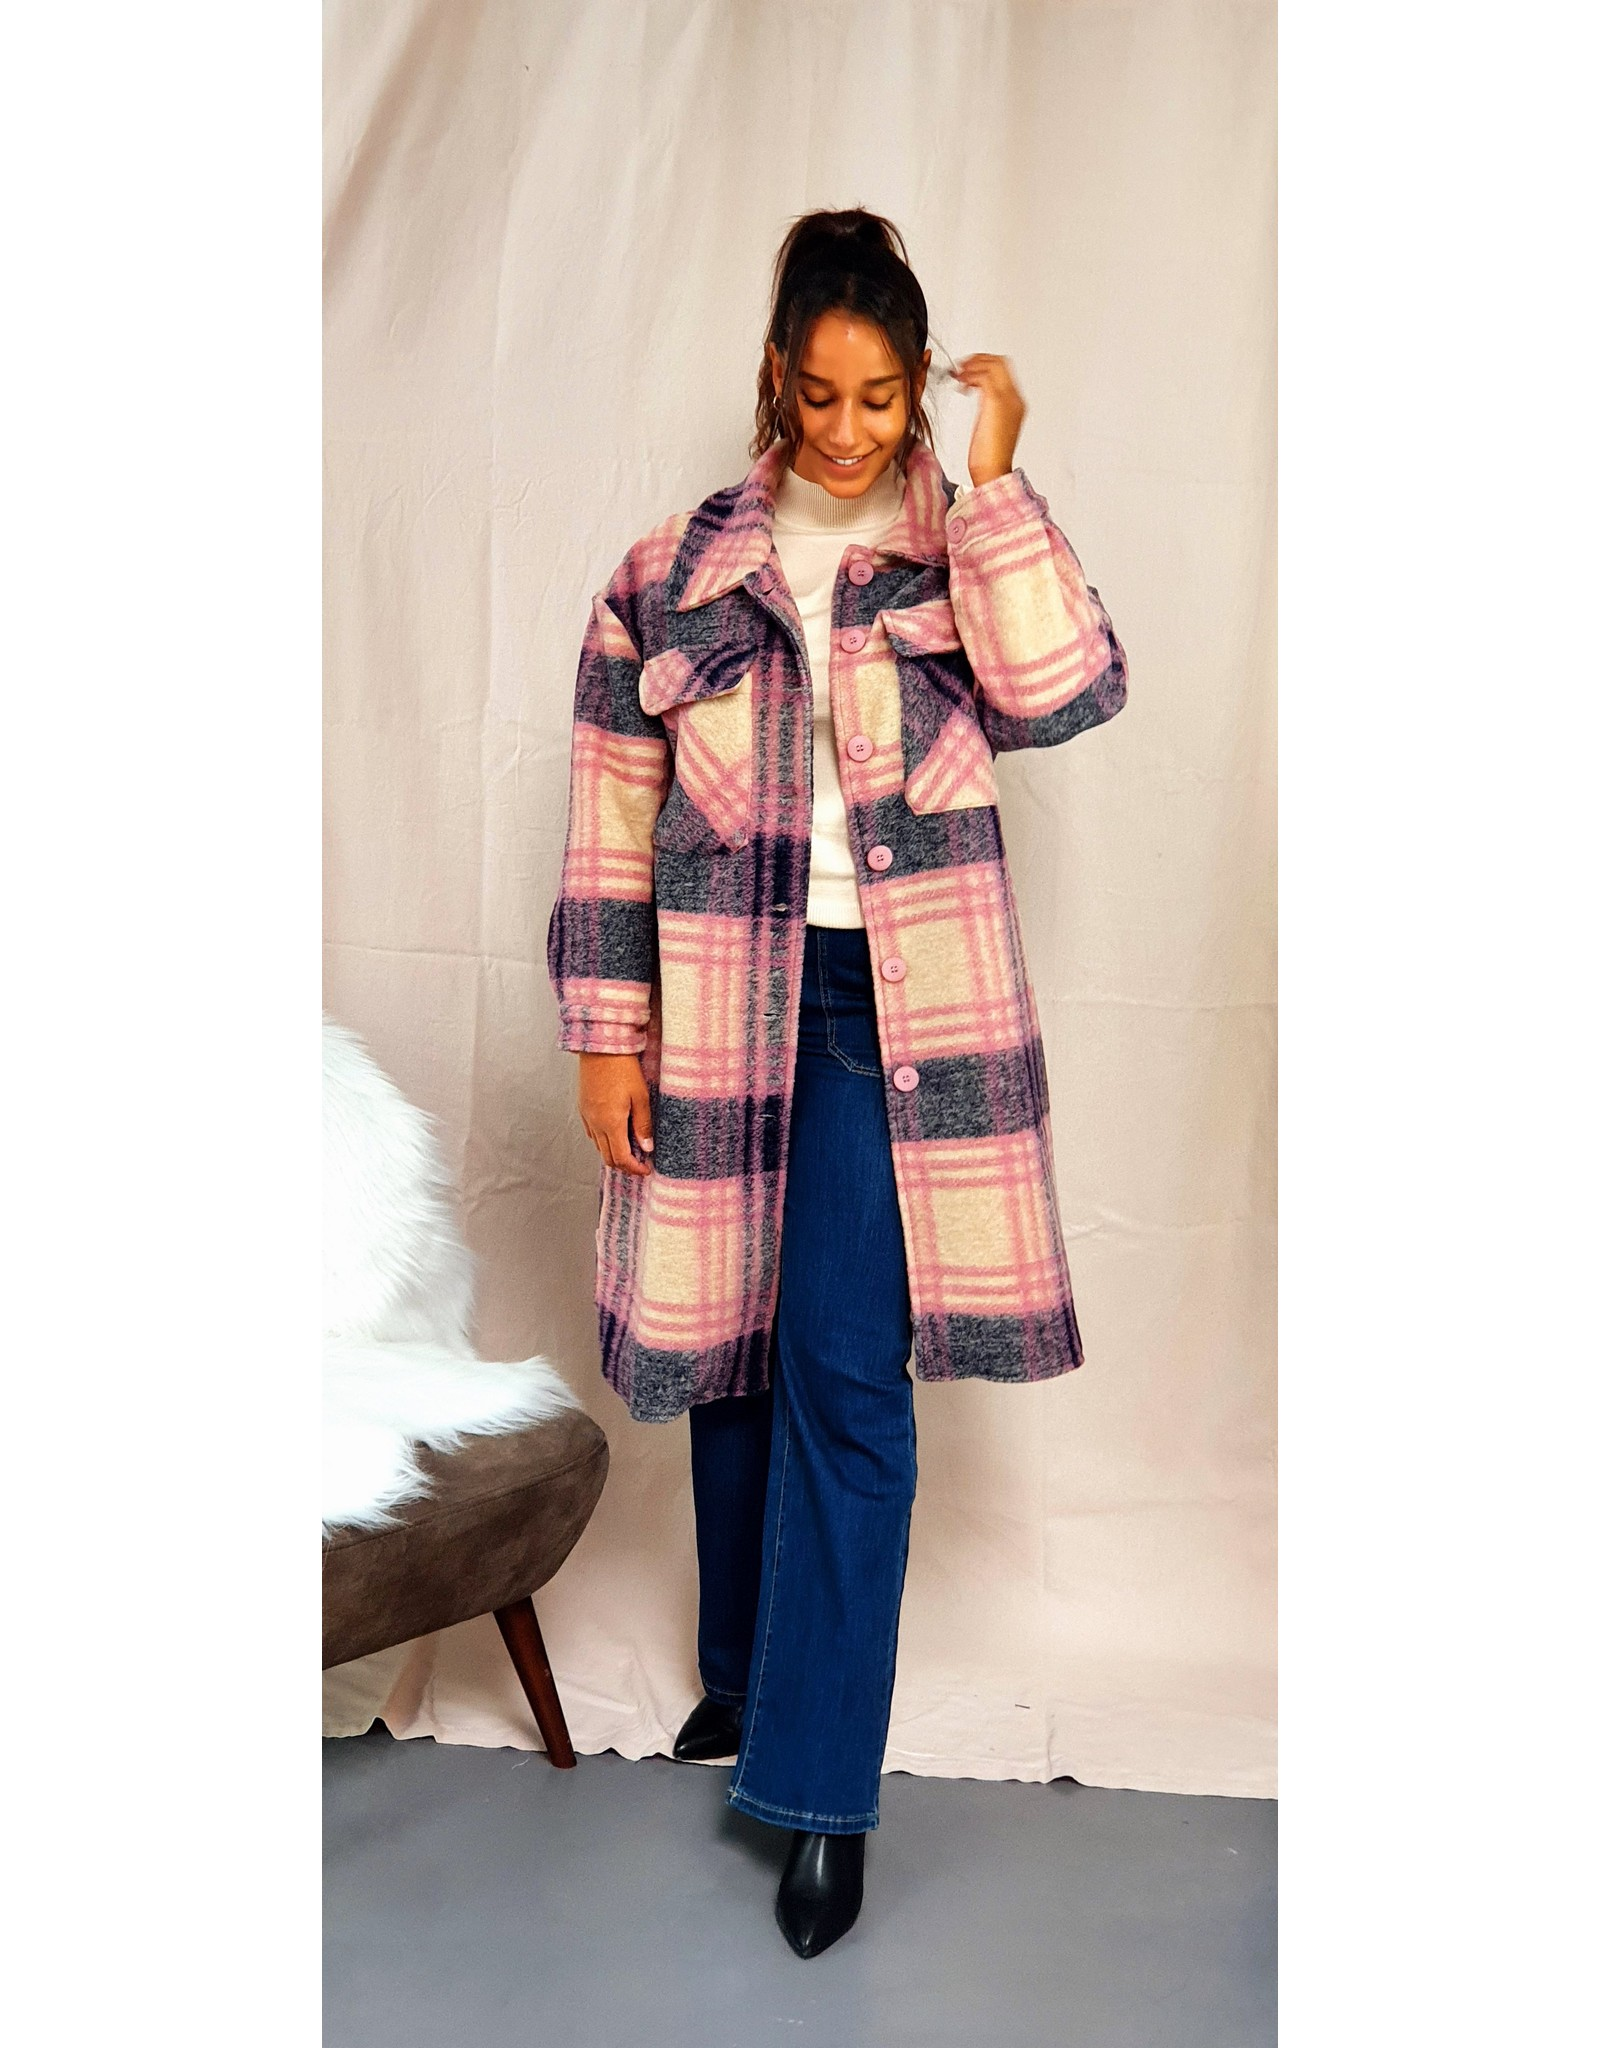 The long checkered jacket